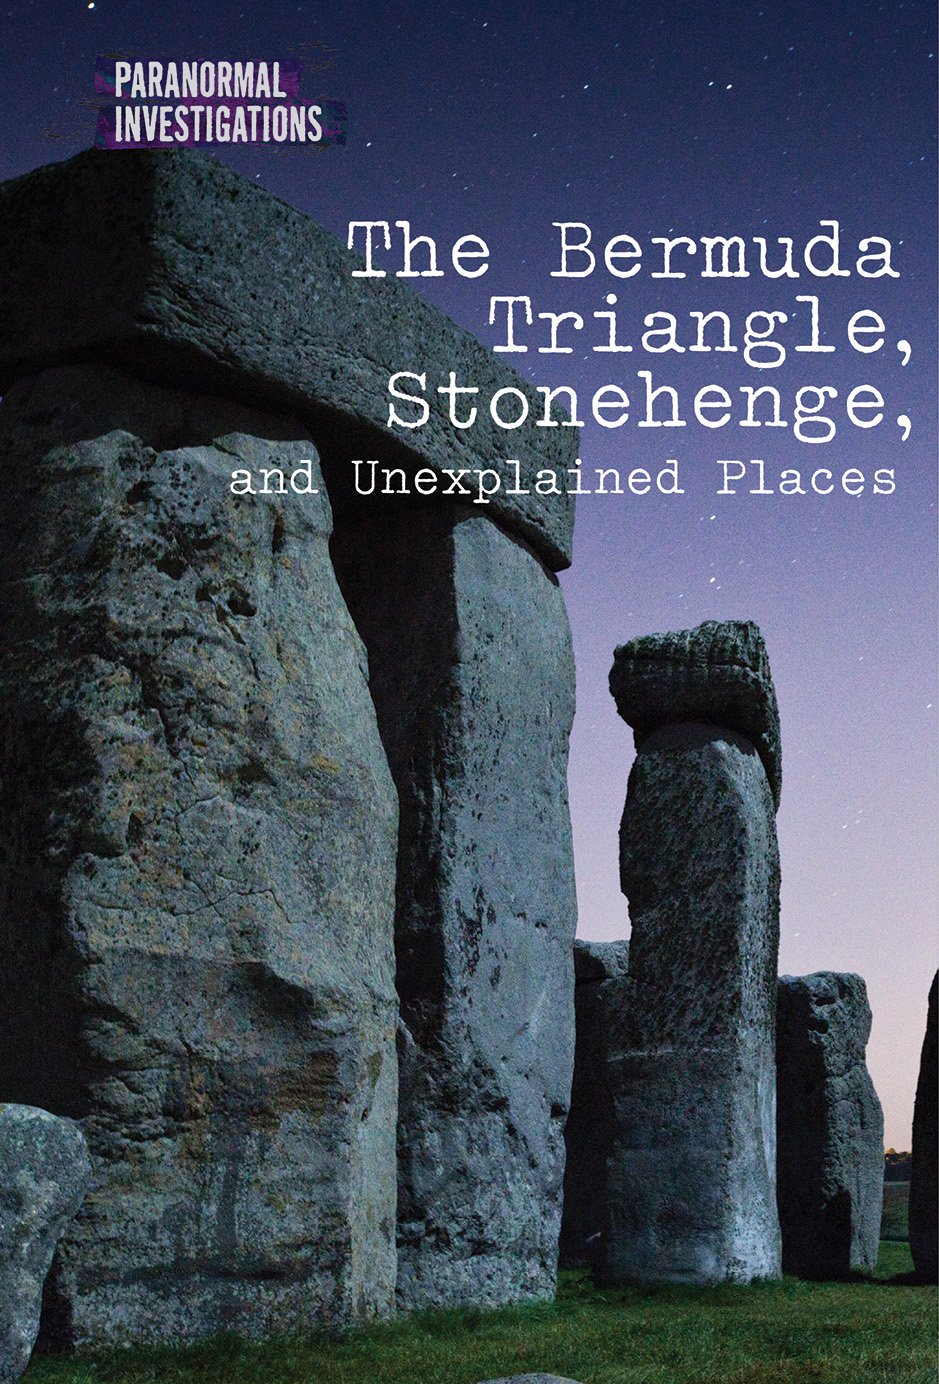 Download The Bermuda Triangle, Stonehenge, and Unexplained Places (Paranormal Investigations) ebook